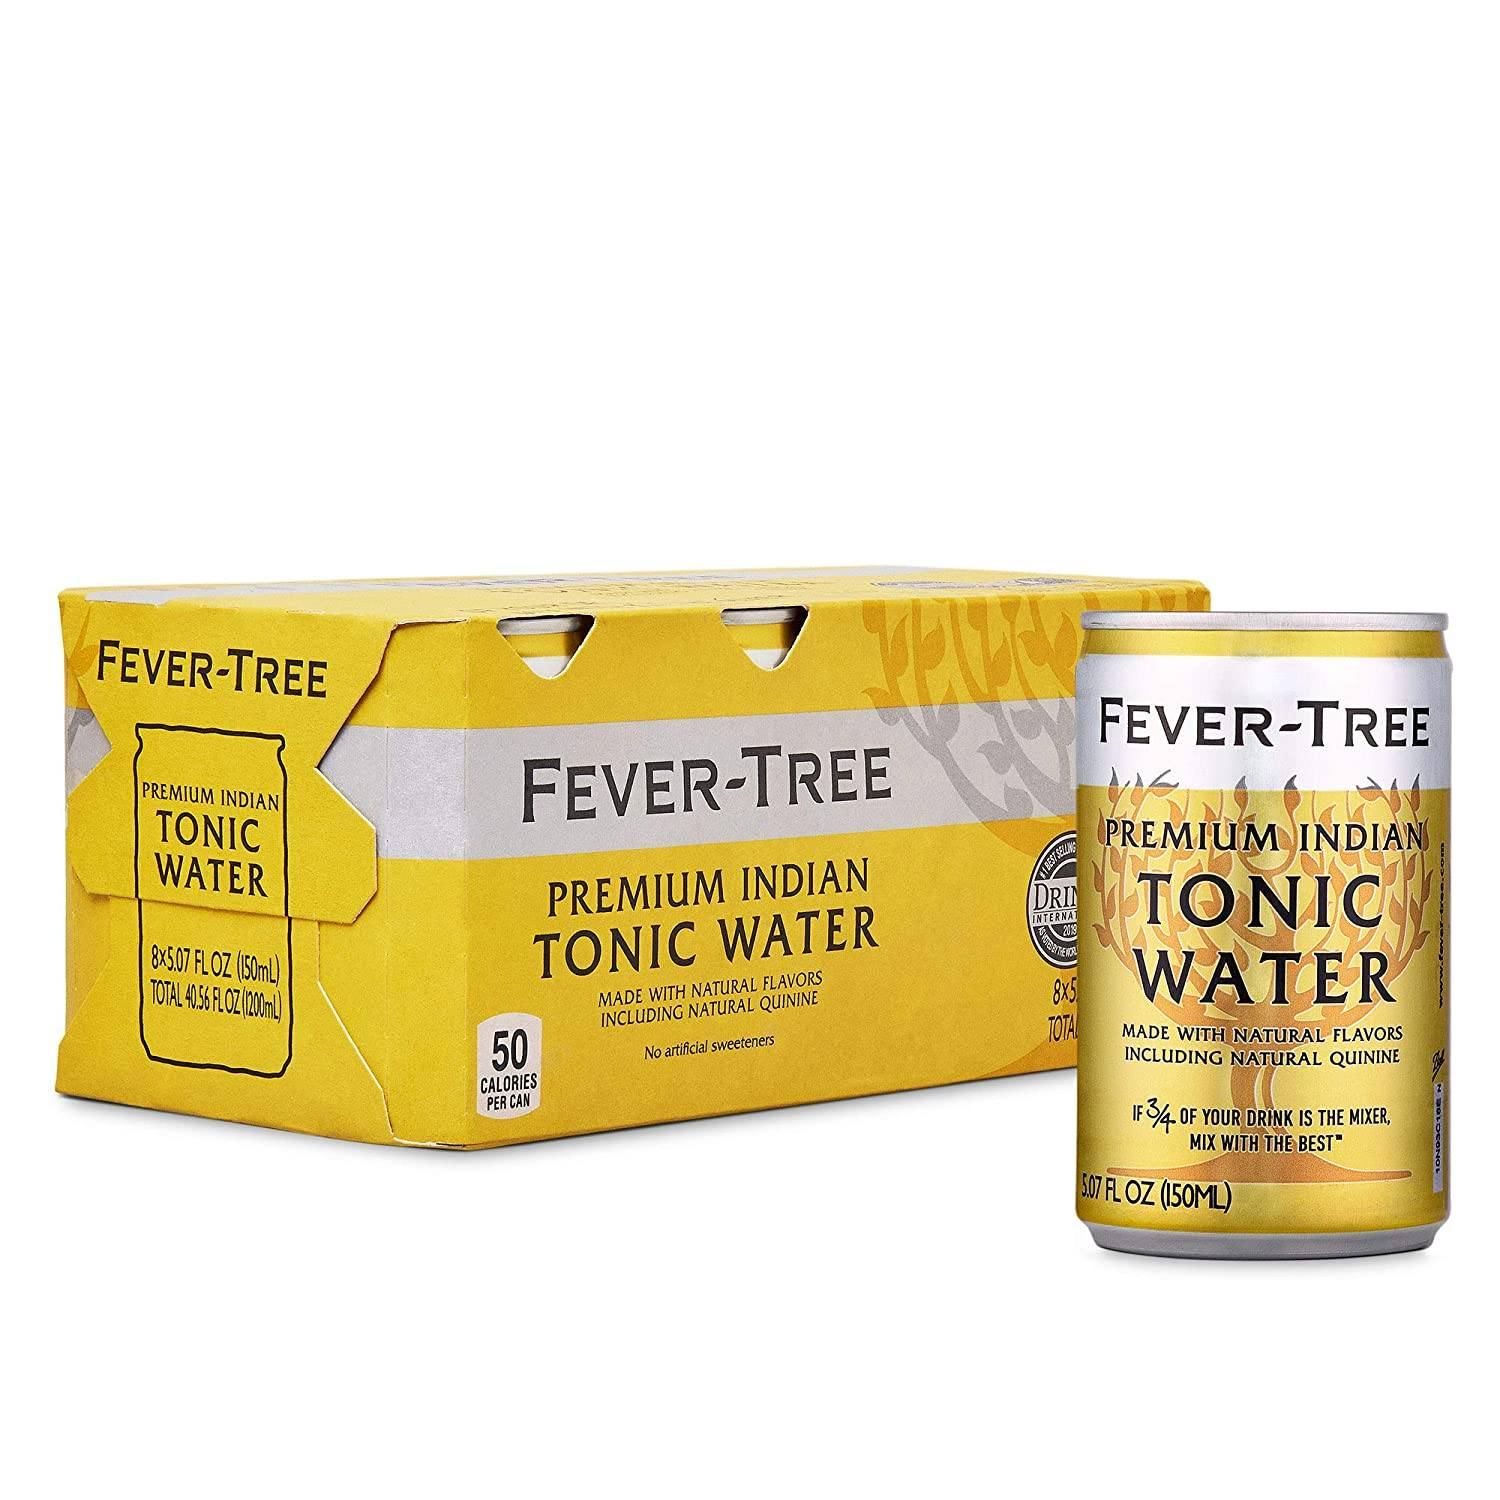 Food & Drink - Fever-Tree - Tonic Water, 8x150ml